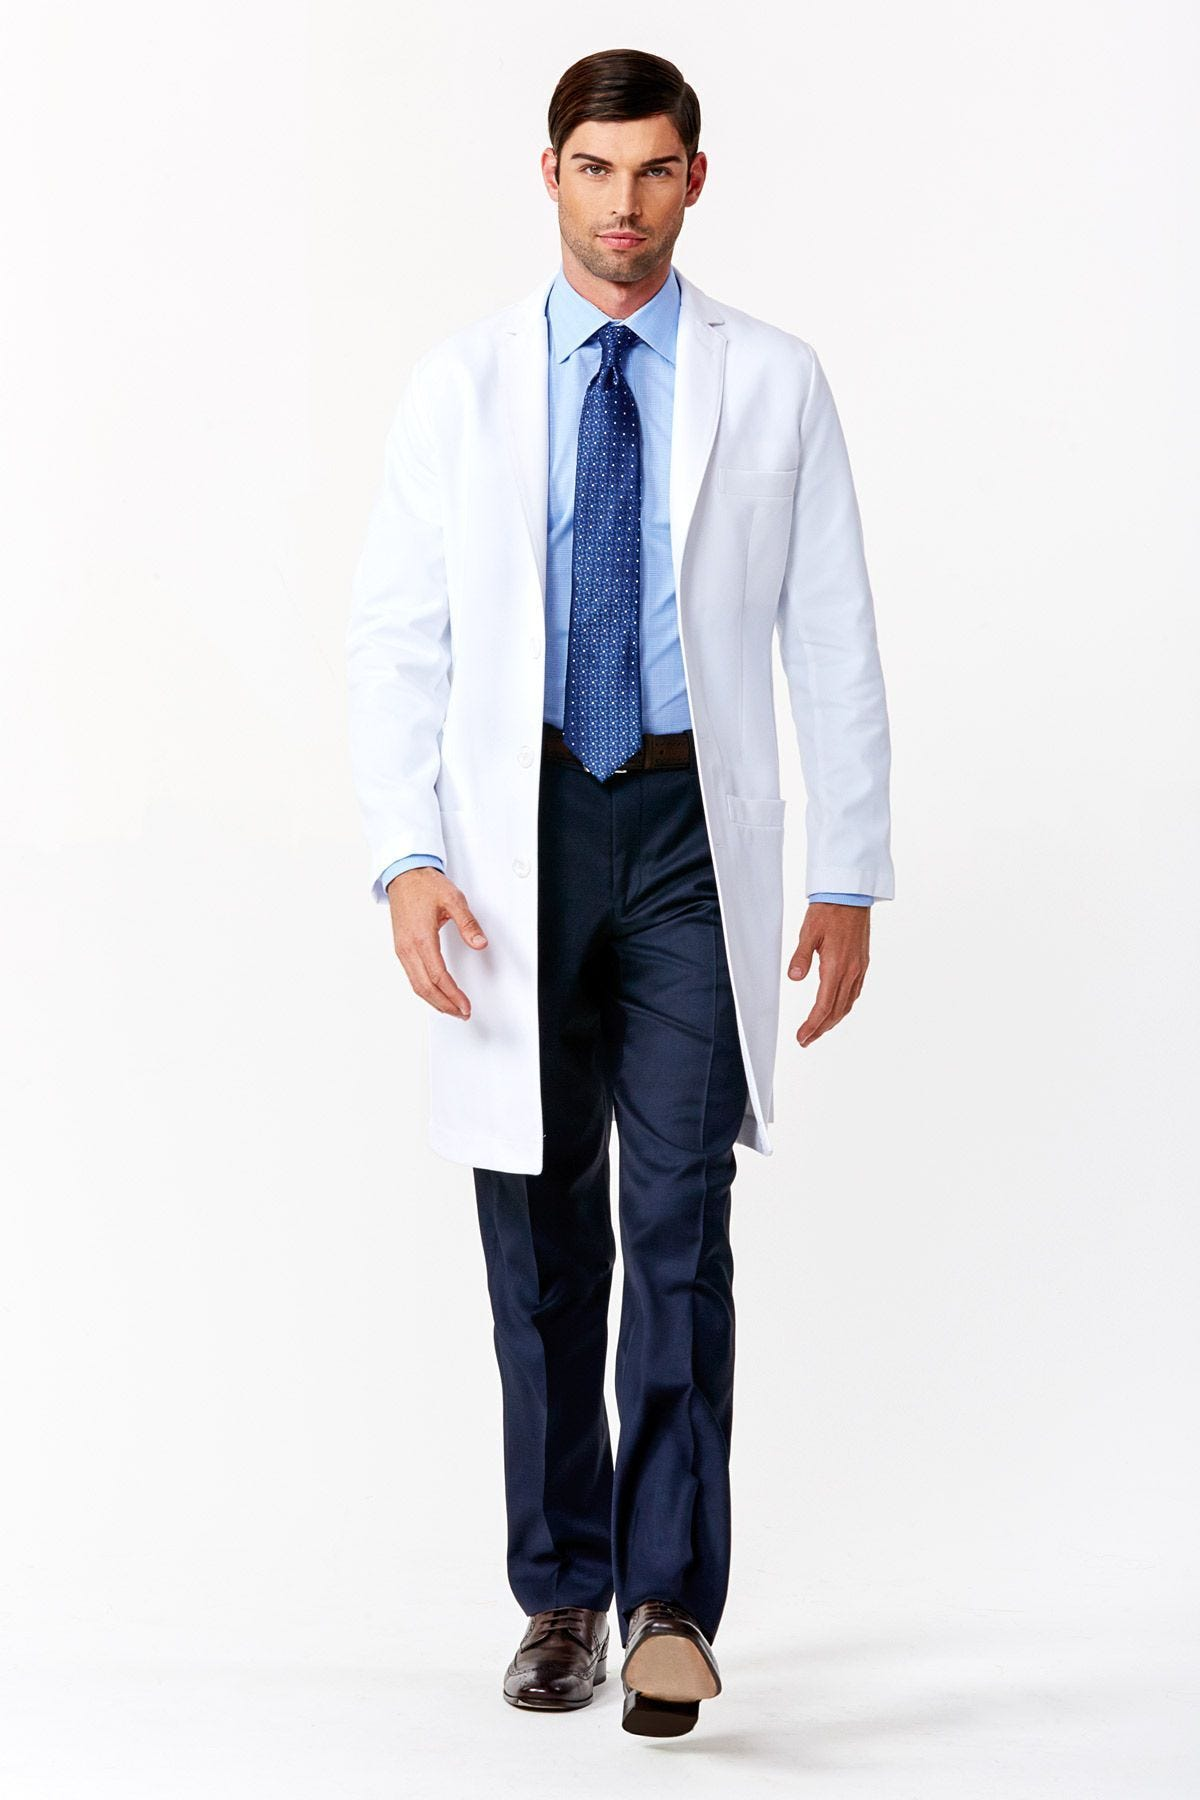 Laboratory White Coats | Lab Coats for Men & Women